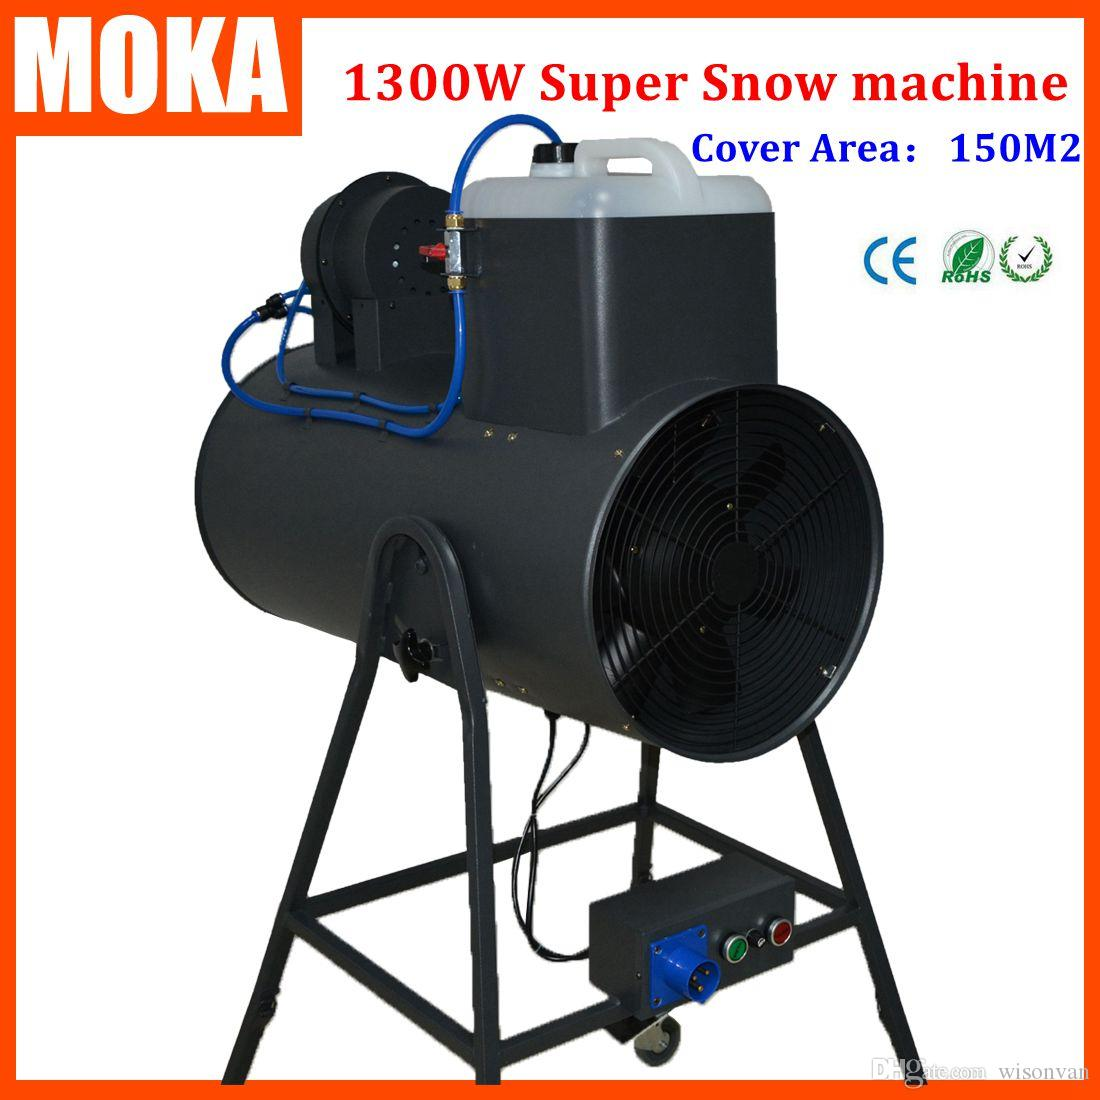 2018 1300w snow machine snowstorm machine artificial snow maker snow blower machine christmas projector for disco dance club party from wisonvan